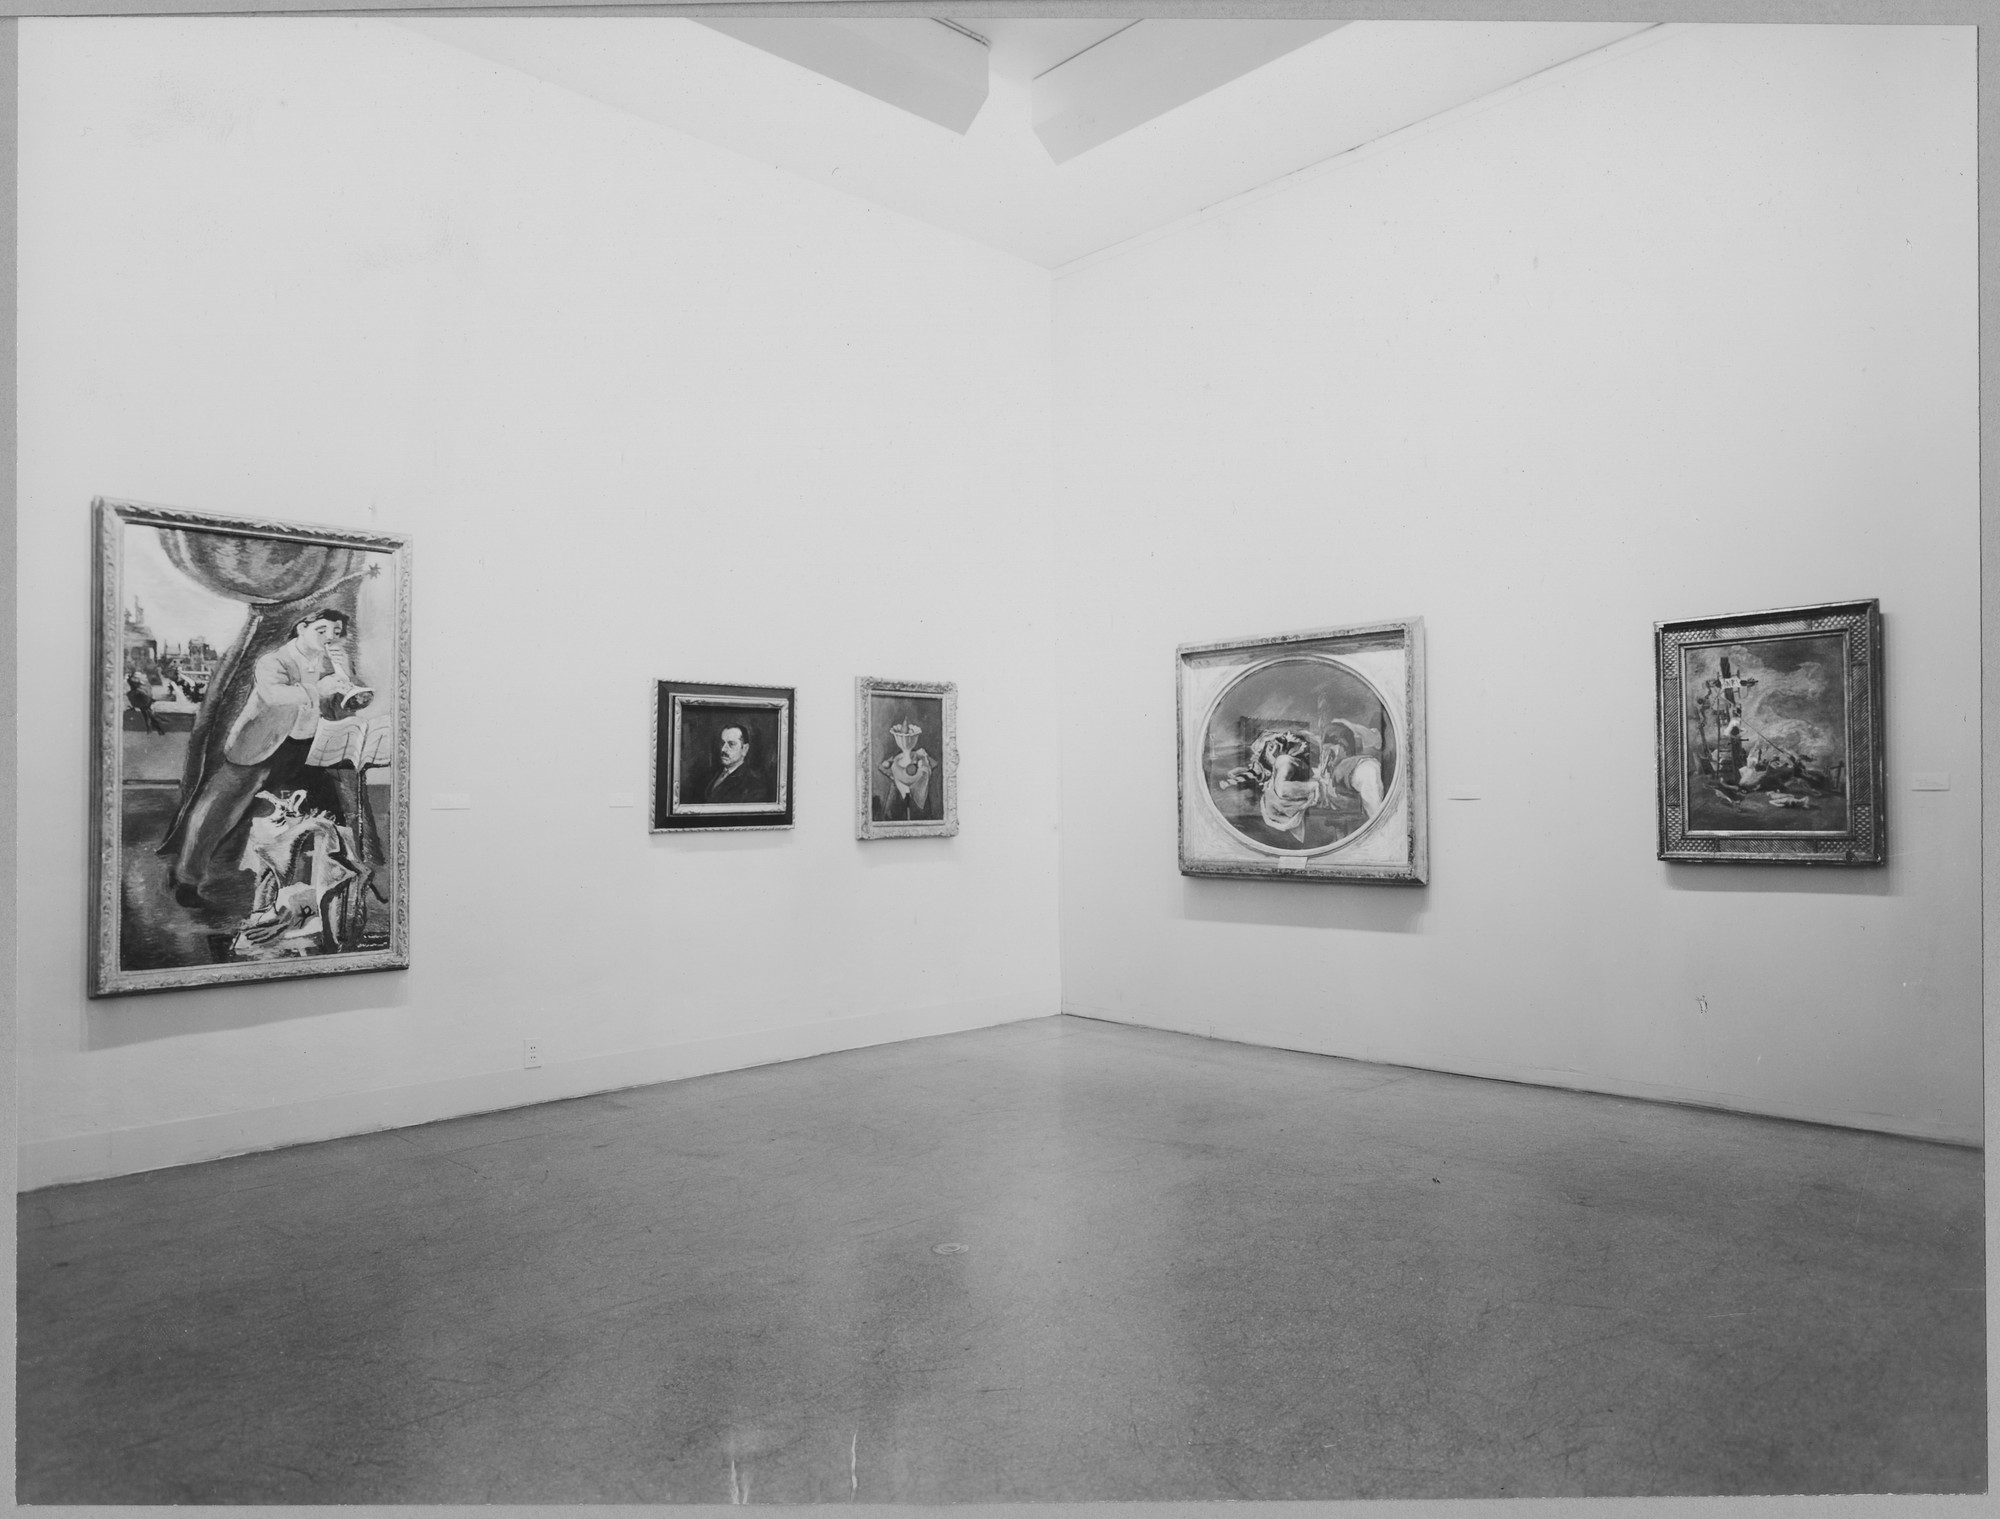 "Installation view of the exhibition, ""Franklin Watkins."" March 21, 1950–June 11, 1950. Photographic Archive. The Museum of Modern Art Archives, New York. IN440.1. Photograph by Soichi Sunami."